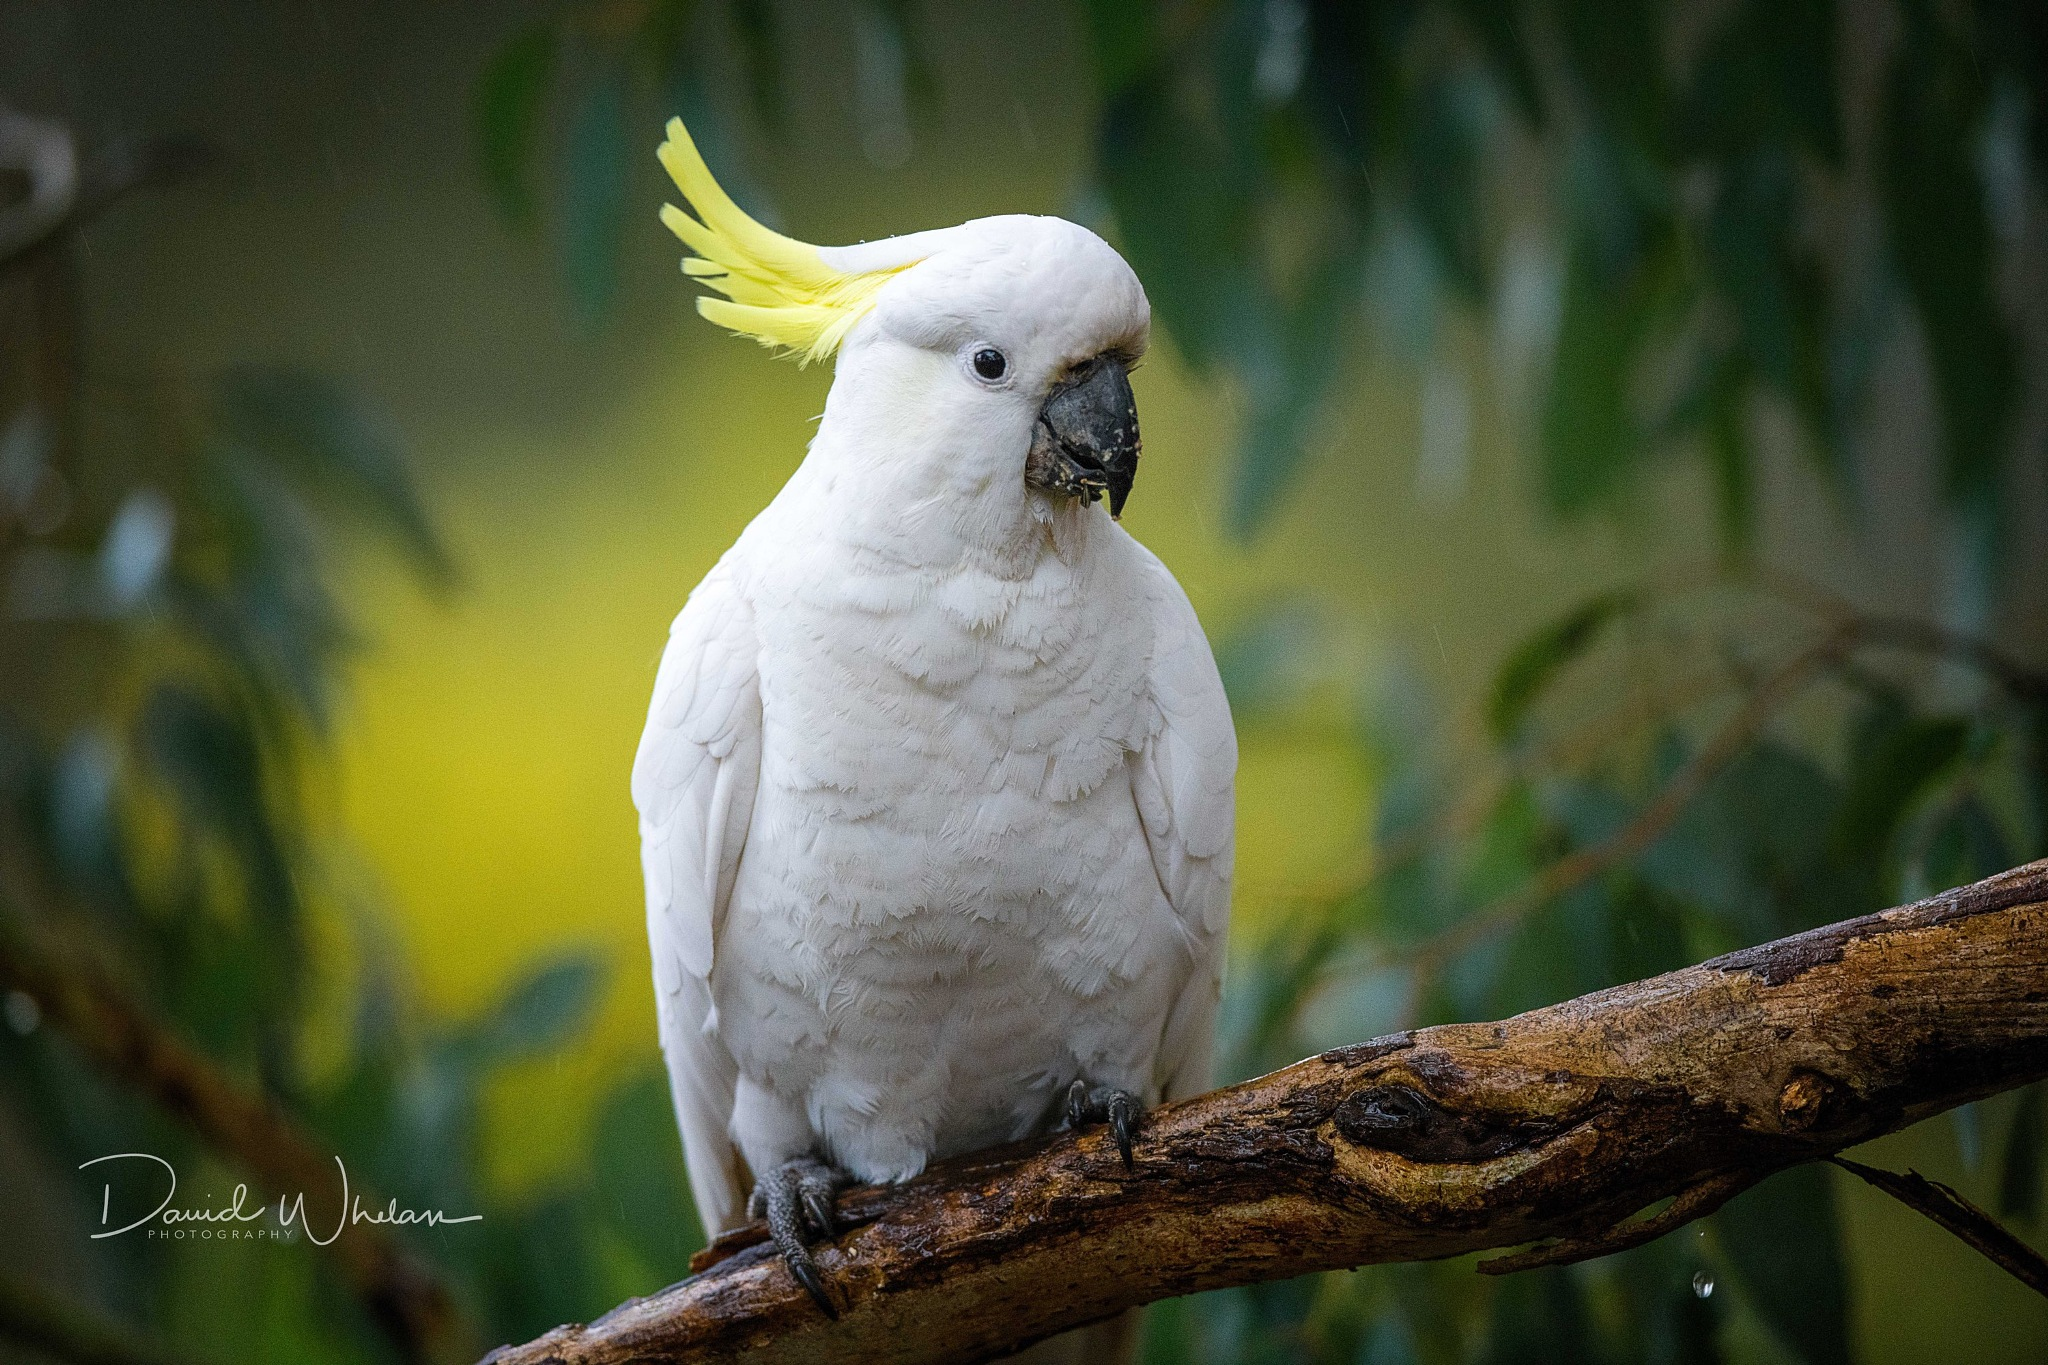 Sulphur-crested cockatoo by David Whelan